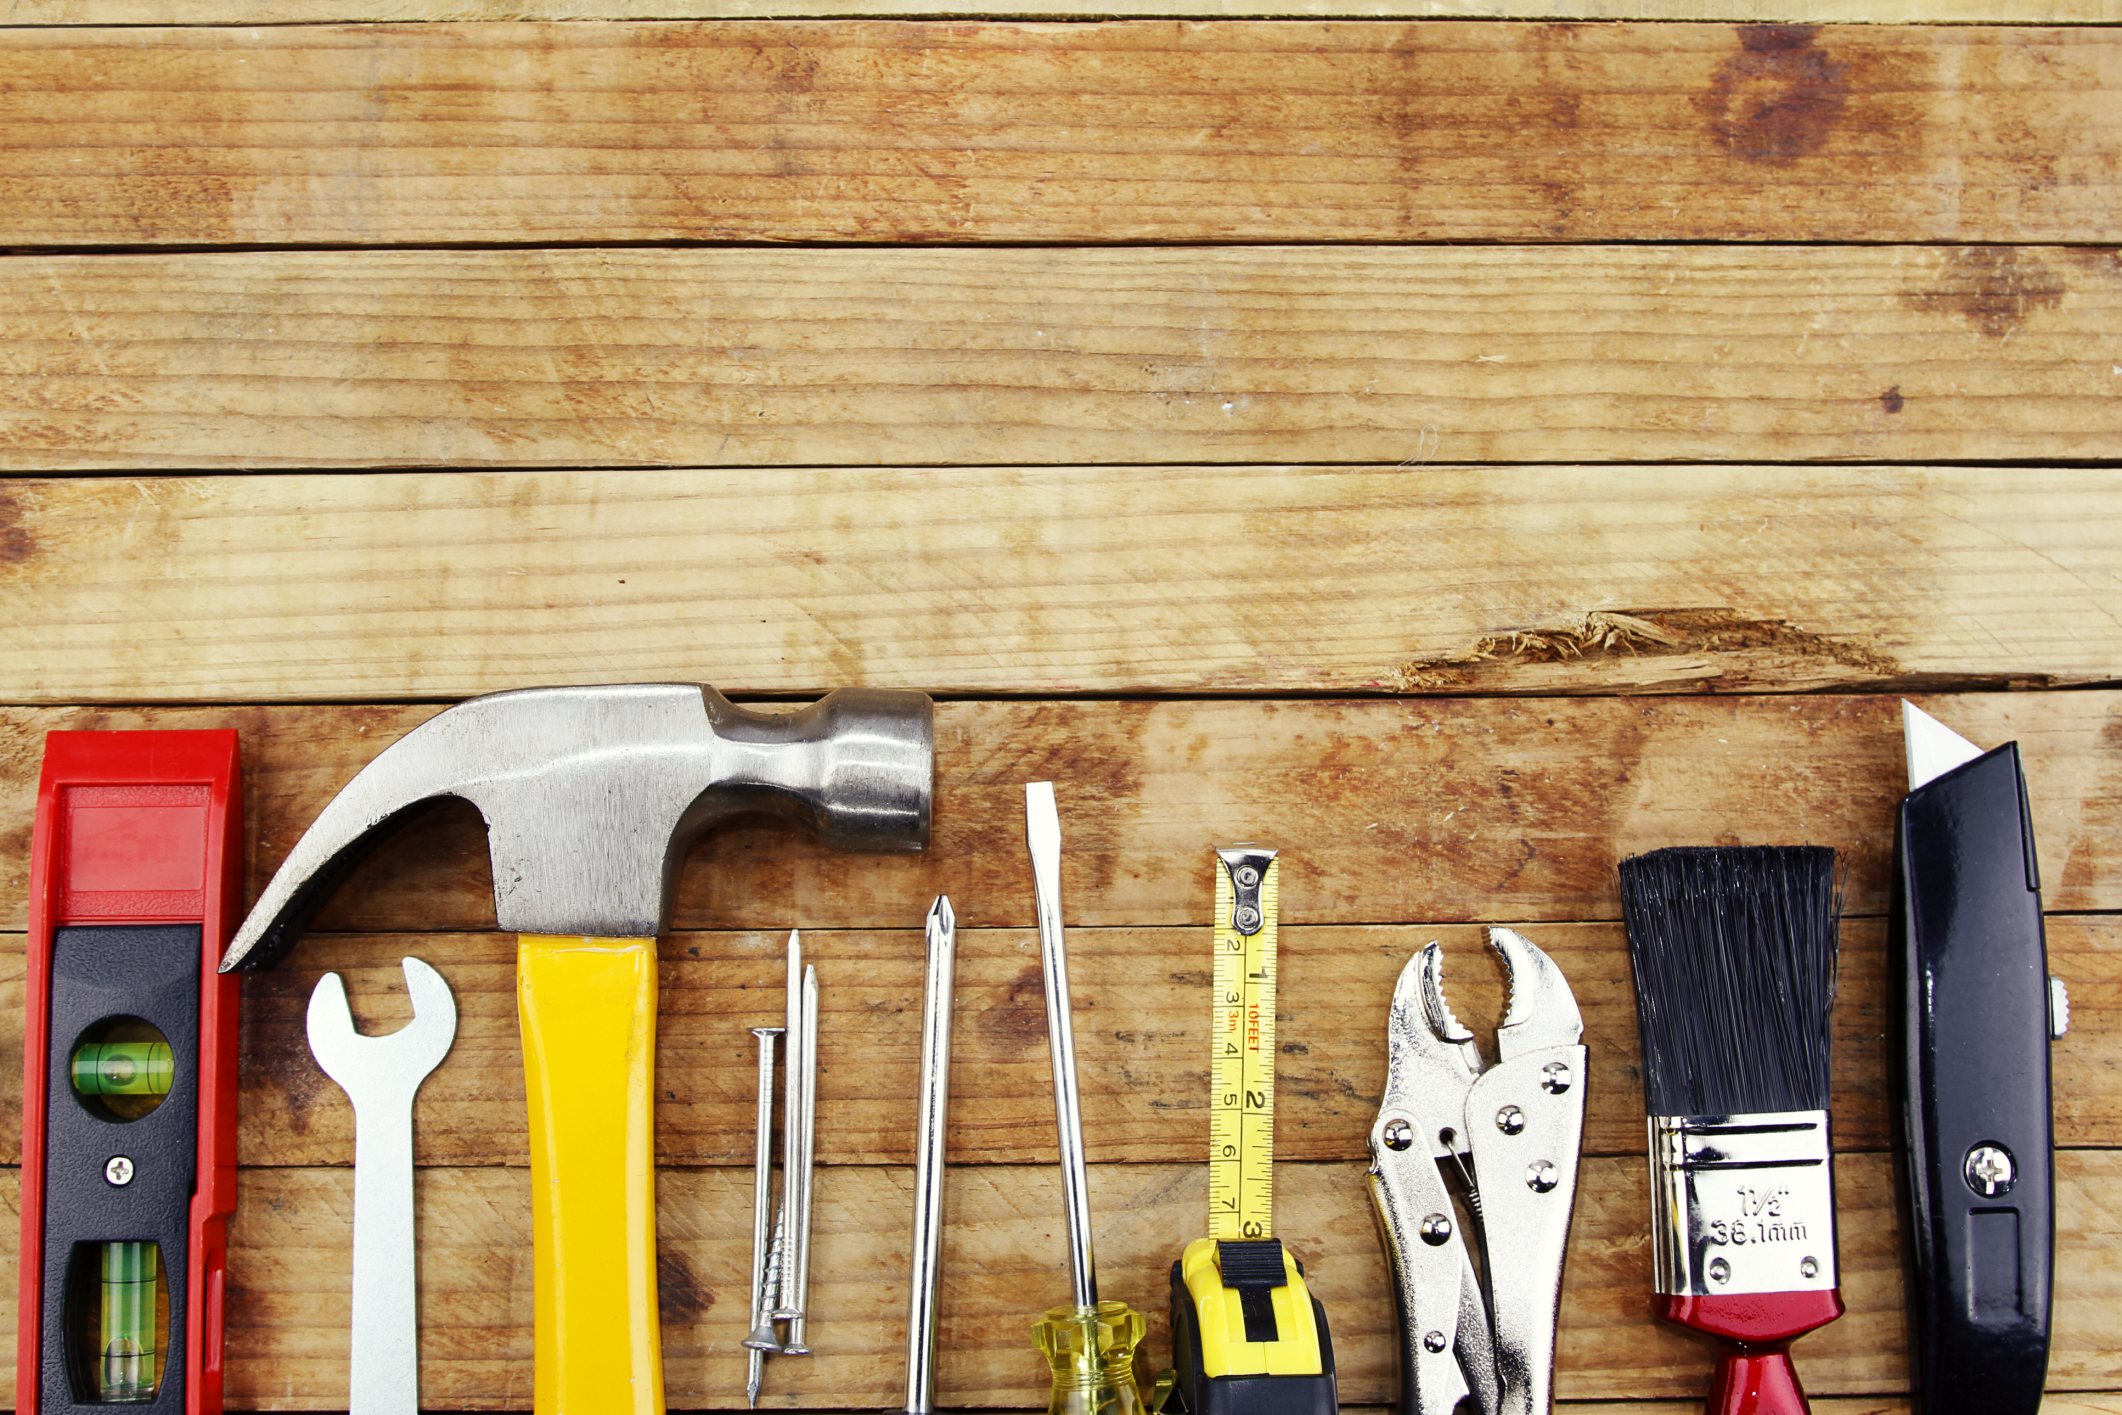 How to Avoid Stress during a Home Improvement Project